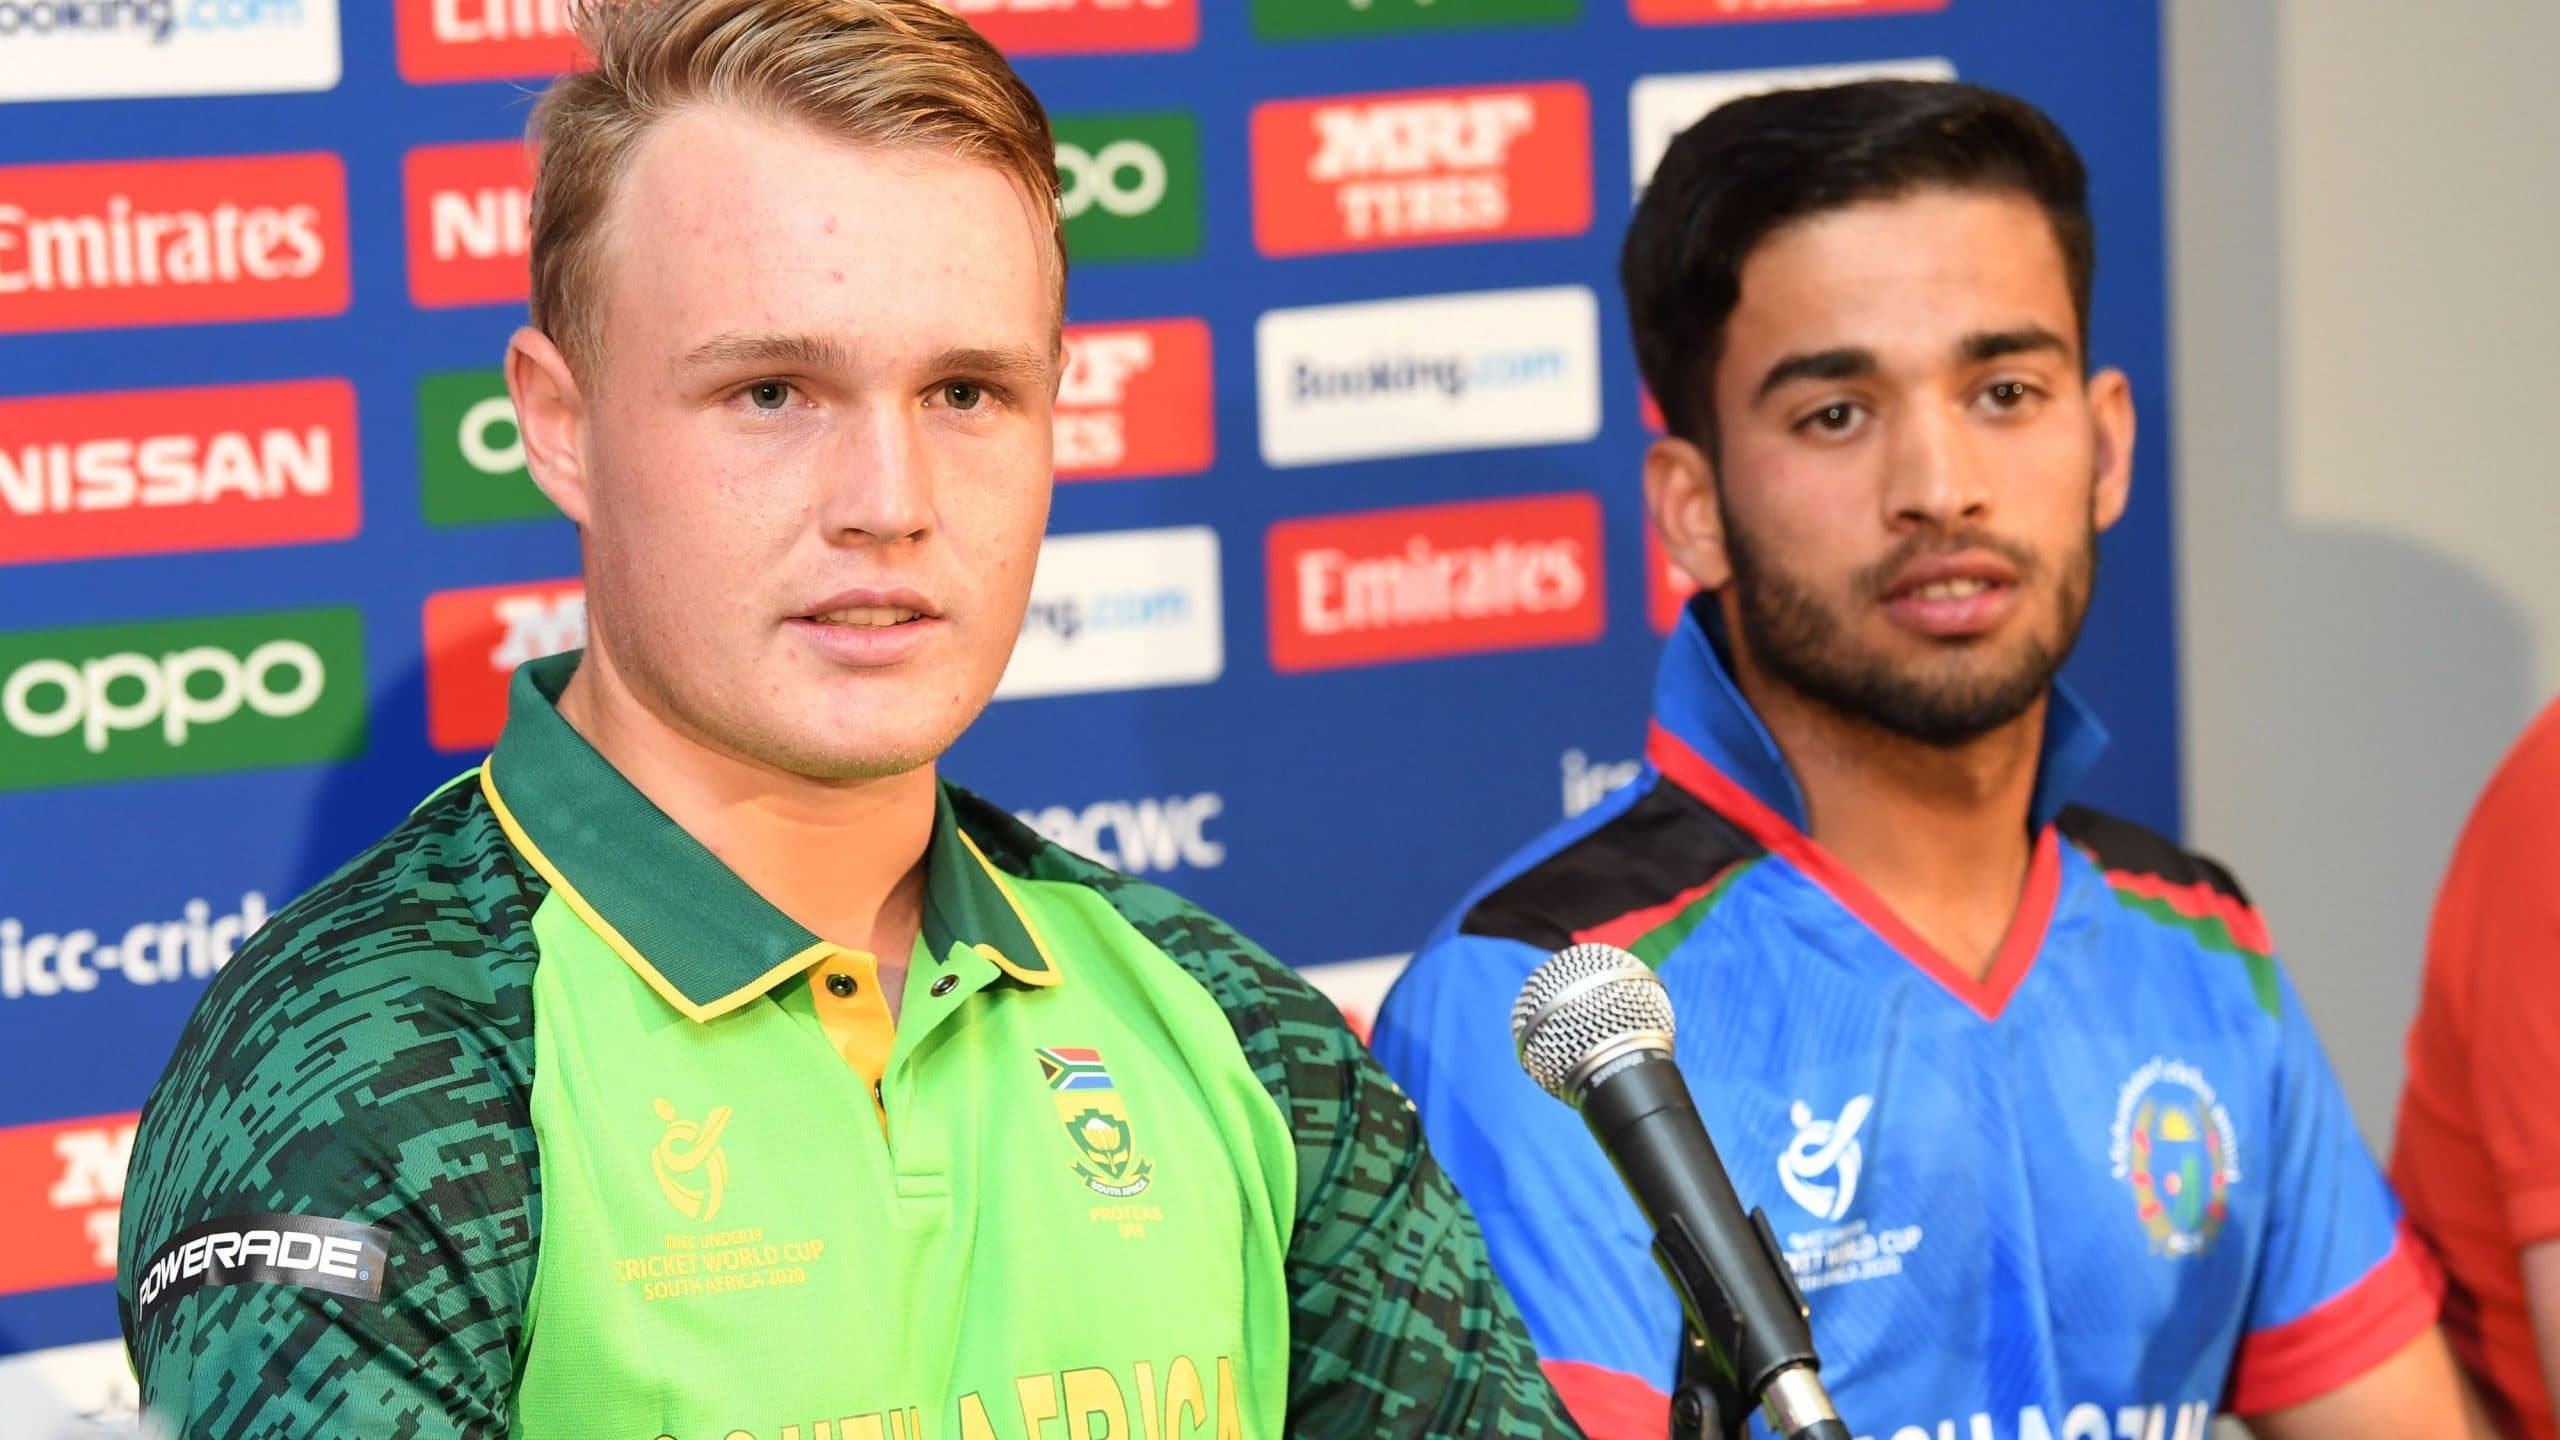 ICC Under-19 World Cup 2020: South Africa and Afghanistan kick off proceedings